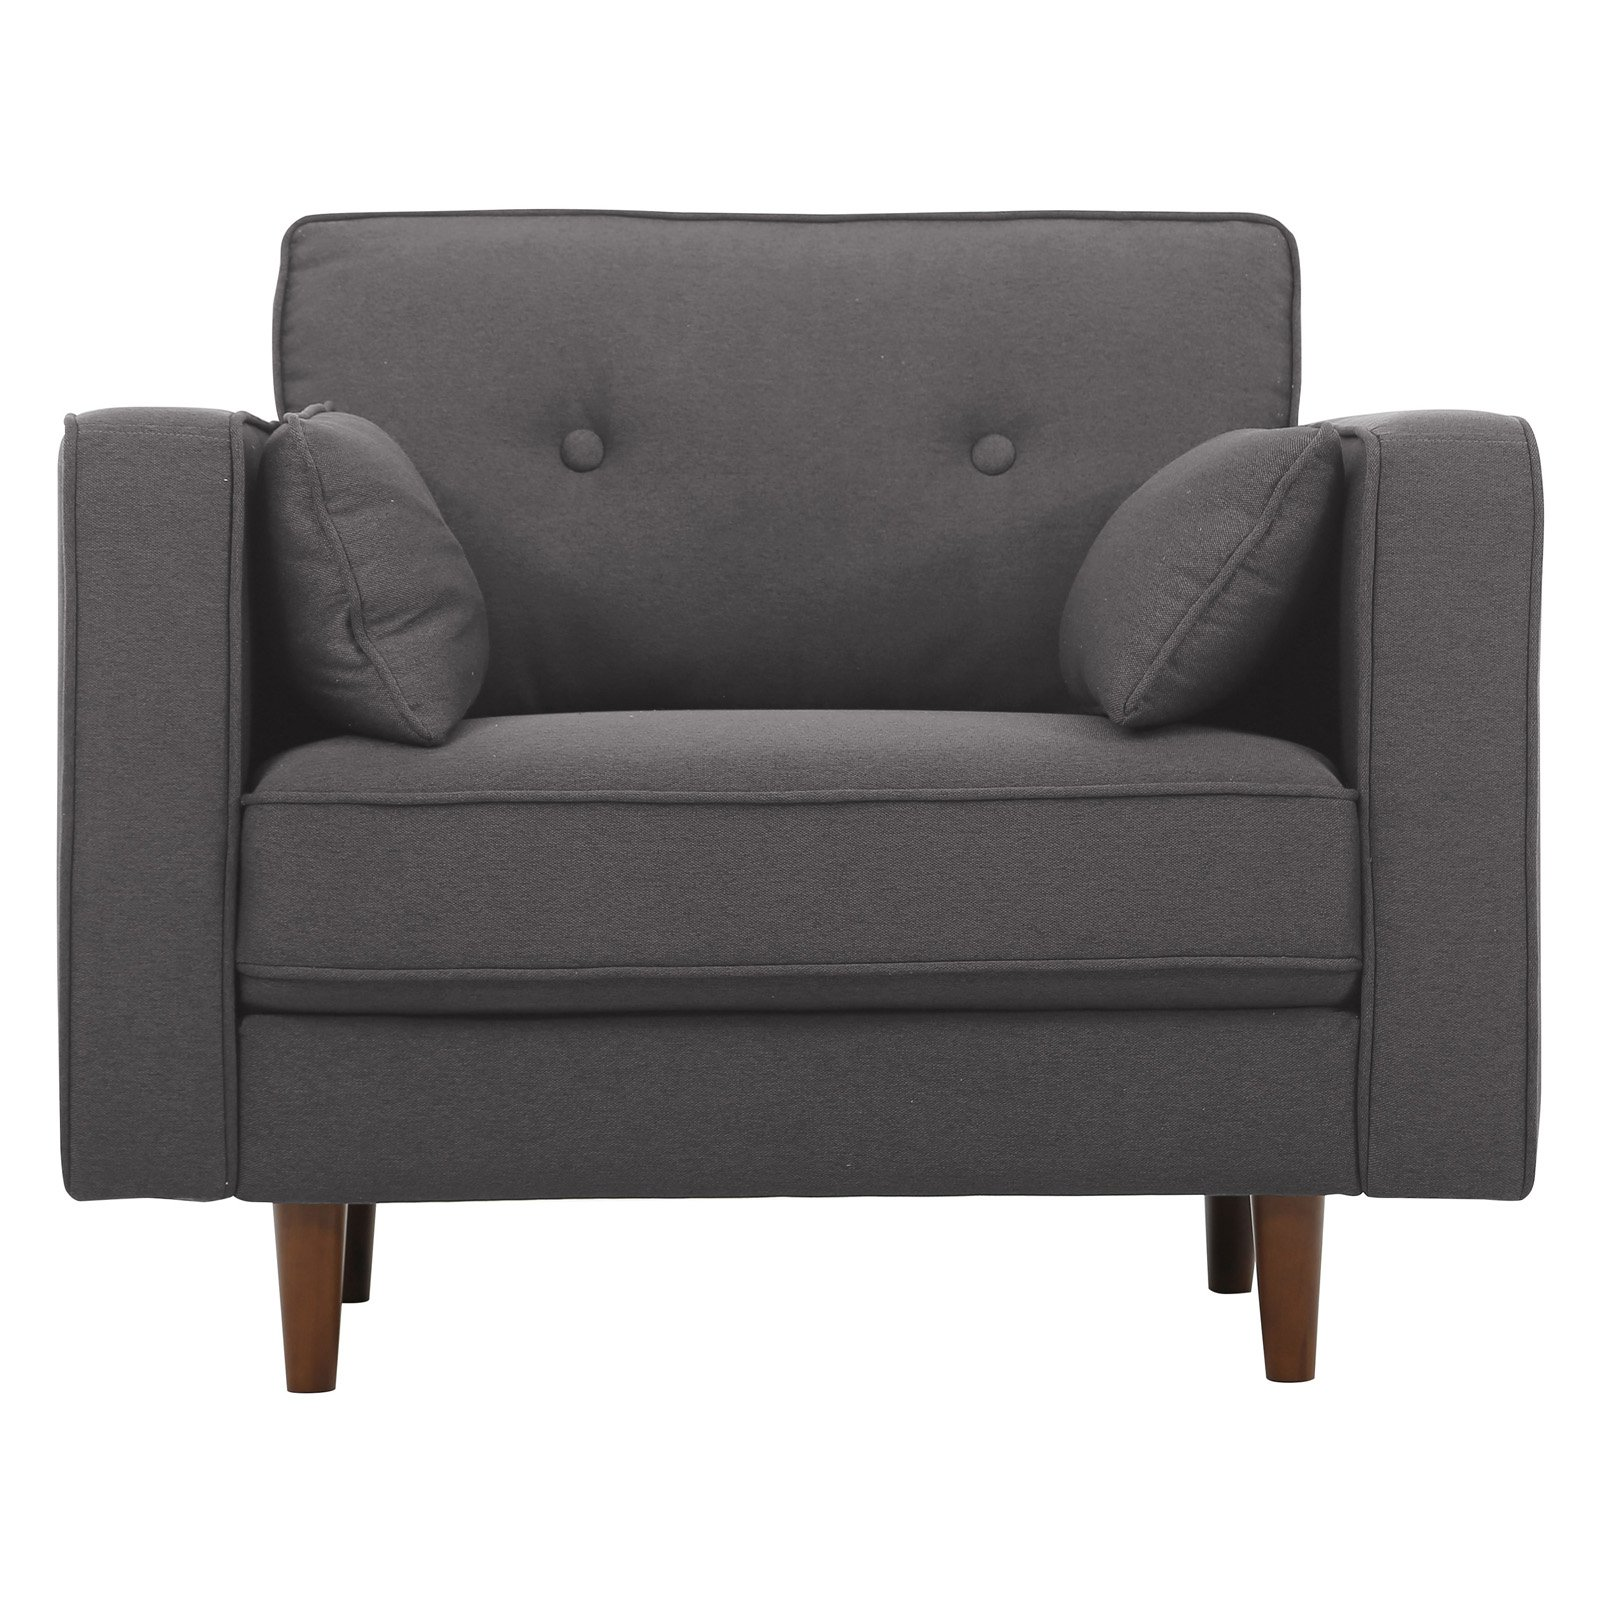 Lifestyle Solutions Torrence Club Chair Walmart Com